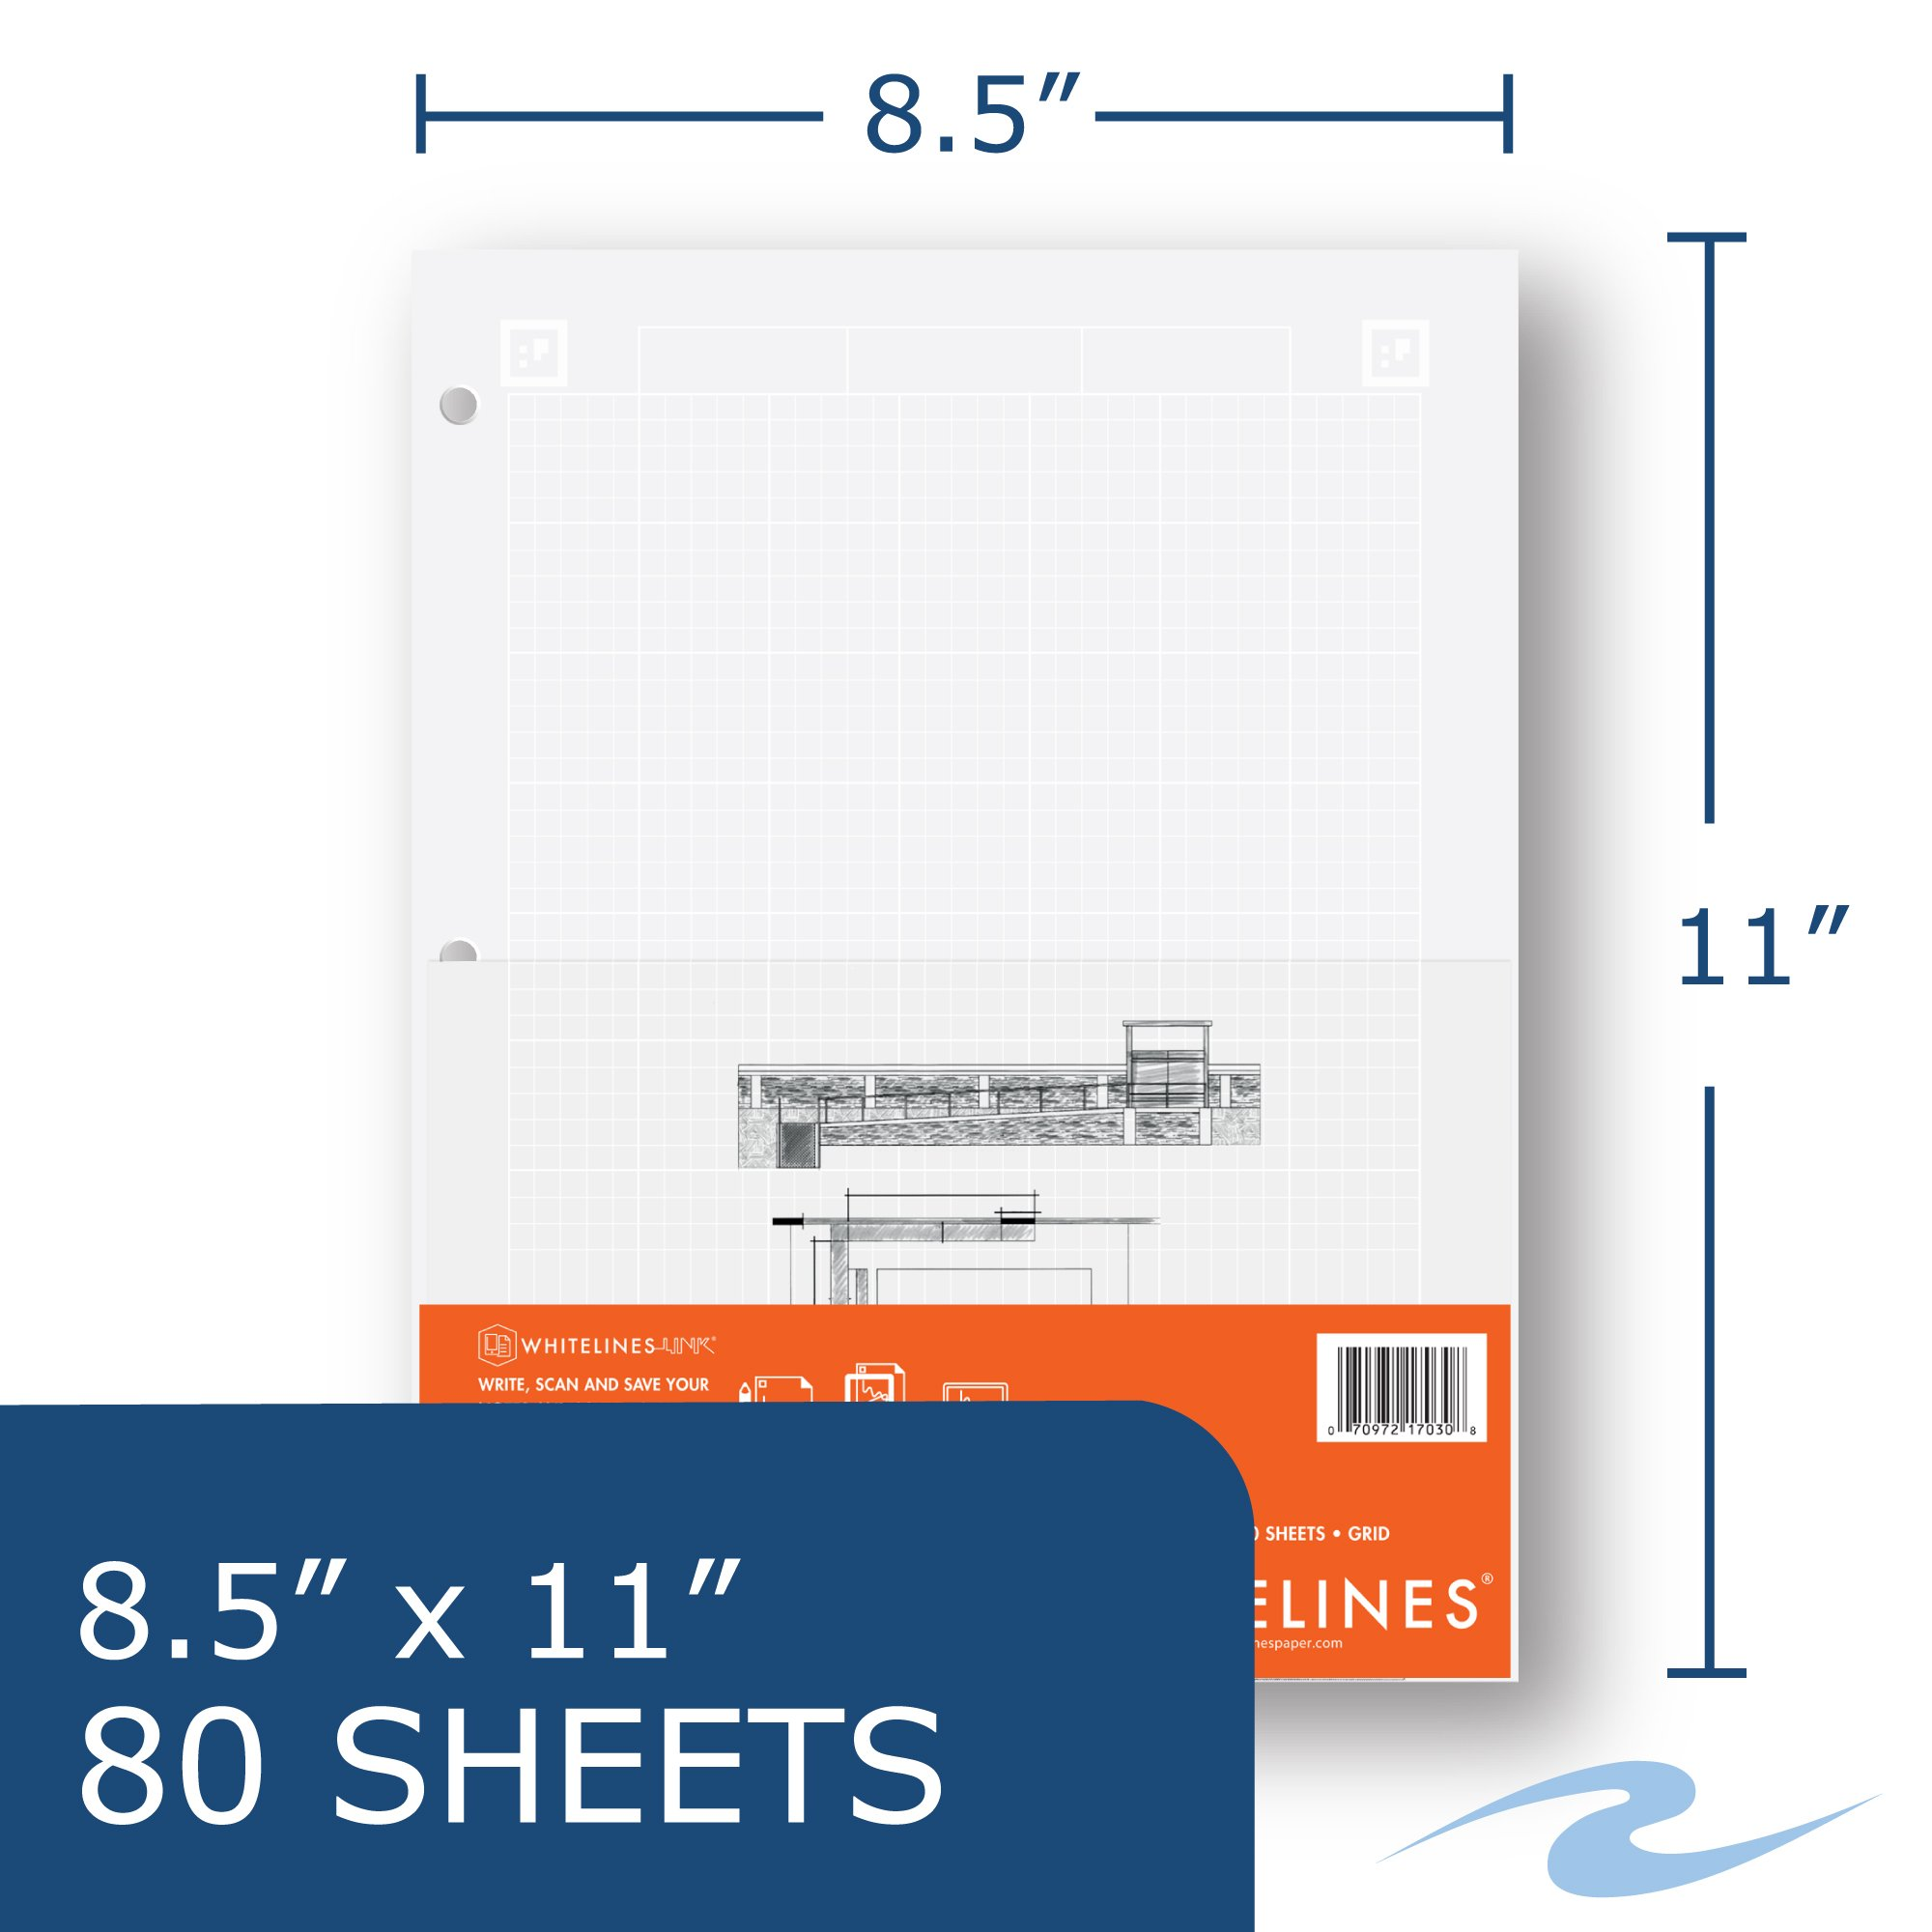 Case of 24 Whitelines App Engineering Computational Pads, 8.5''x11'', Grey Grid White Paper, 80 sheets, 3 Hole punch, Enclosed Grid printing by WhiteLines (Image #3)